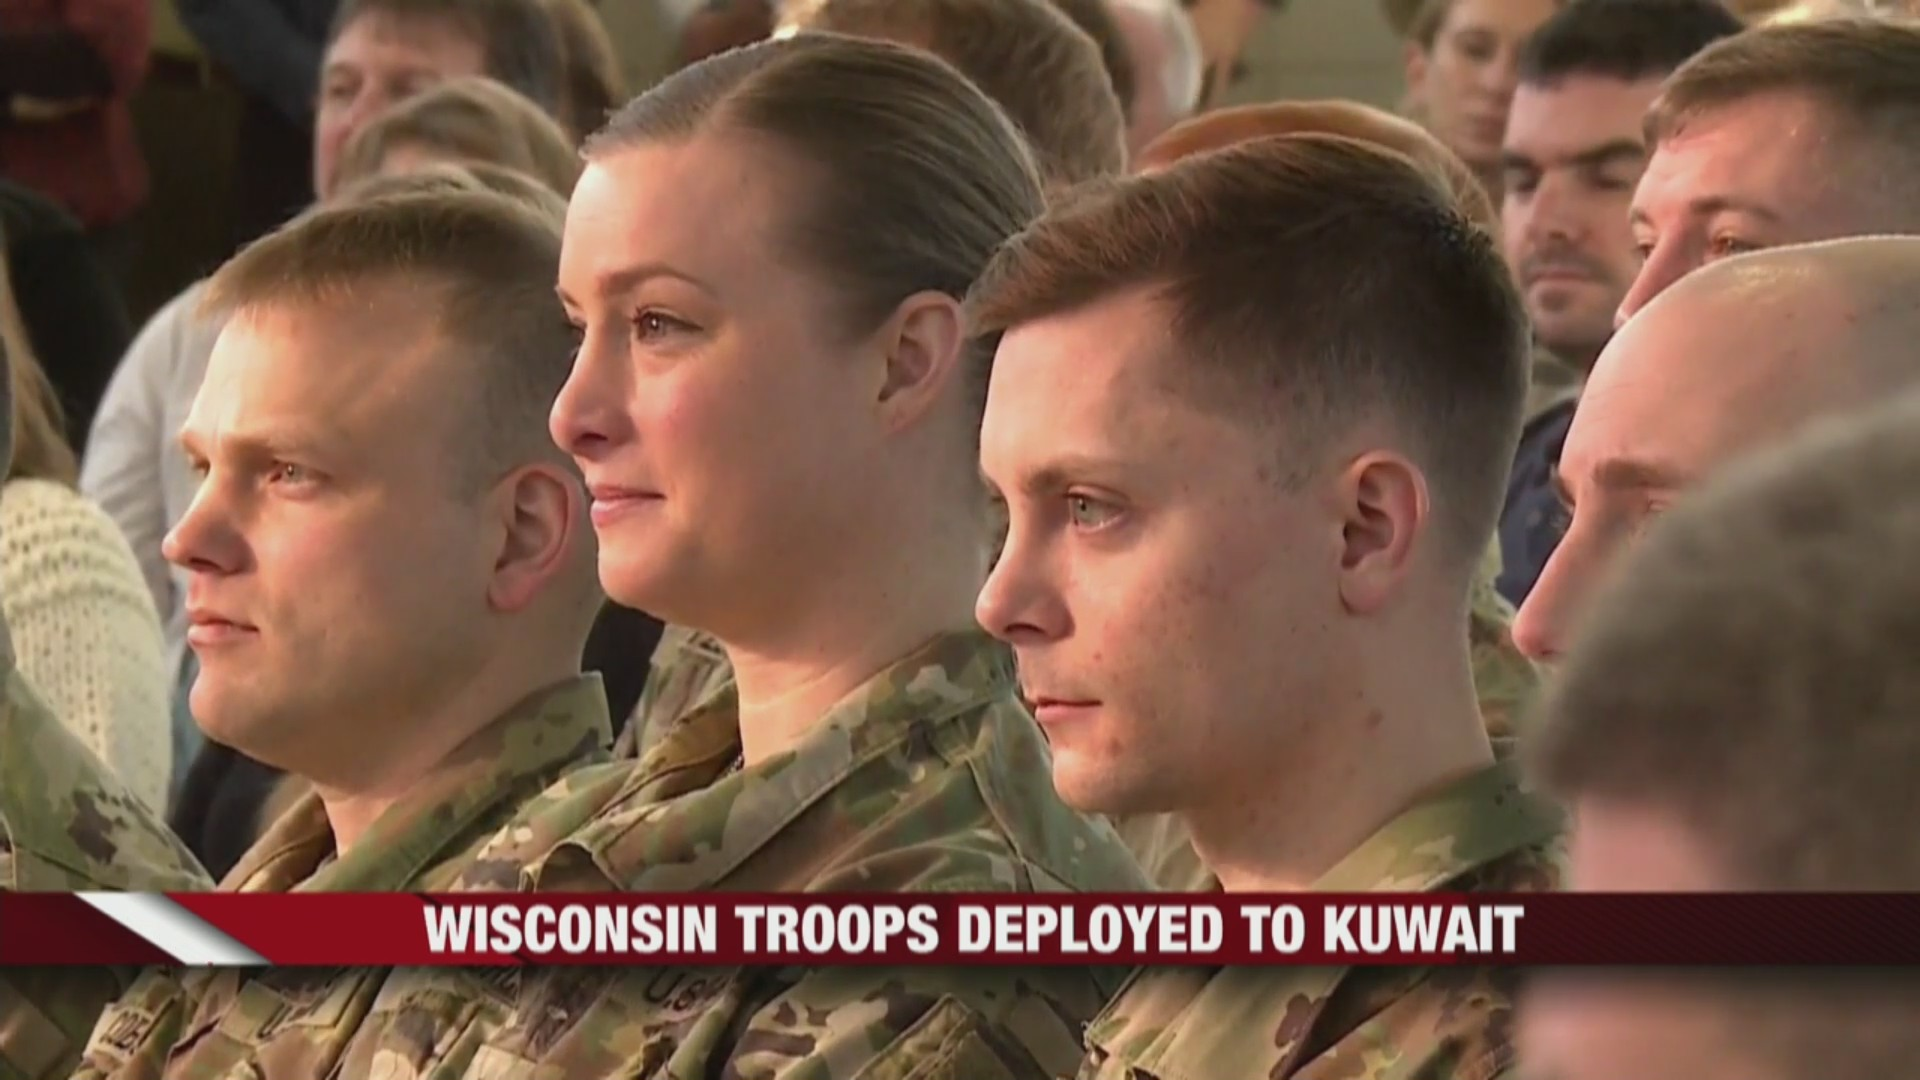 Wisconsin Army National Guard soldiers deployed to Kuwait